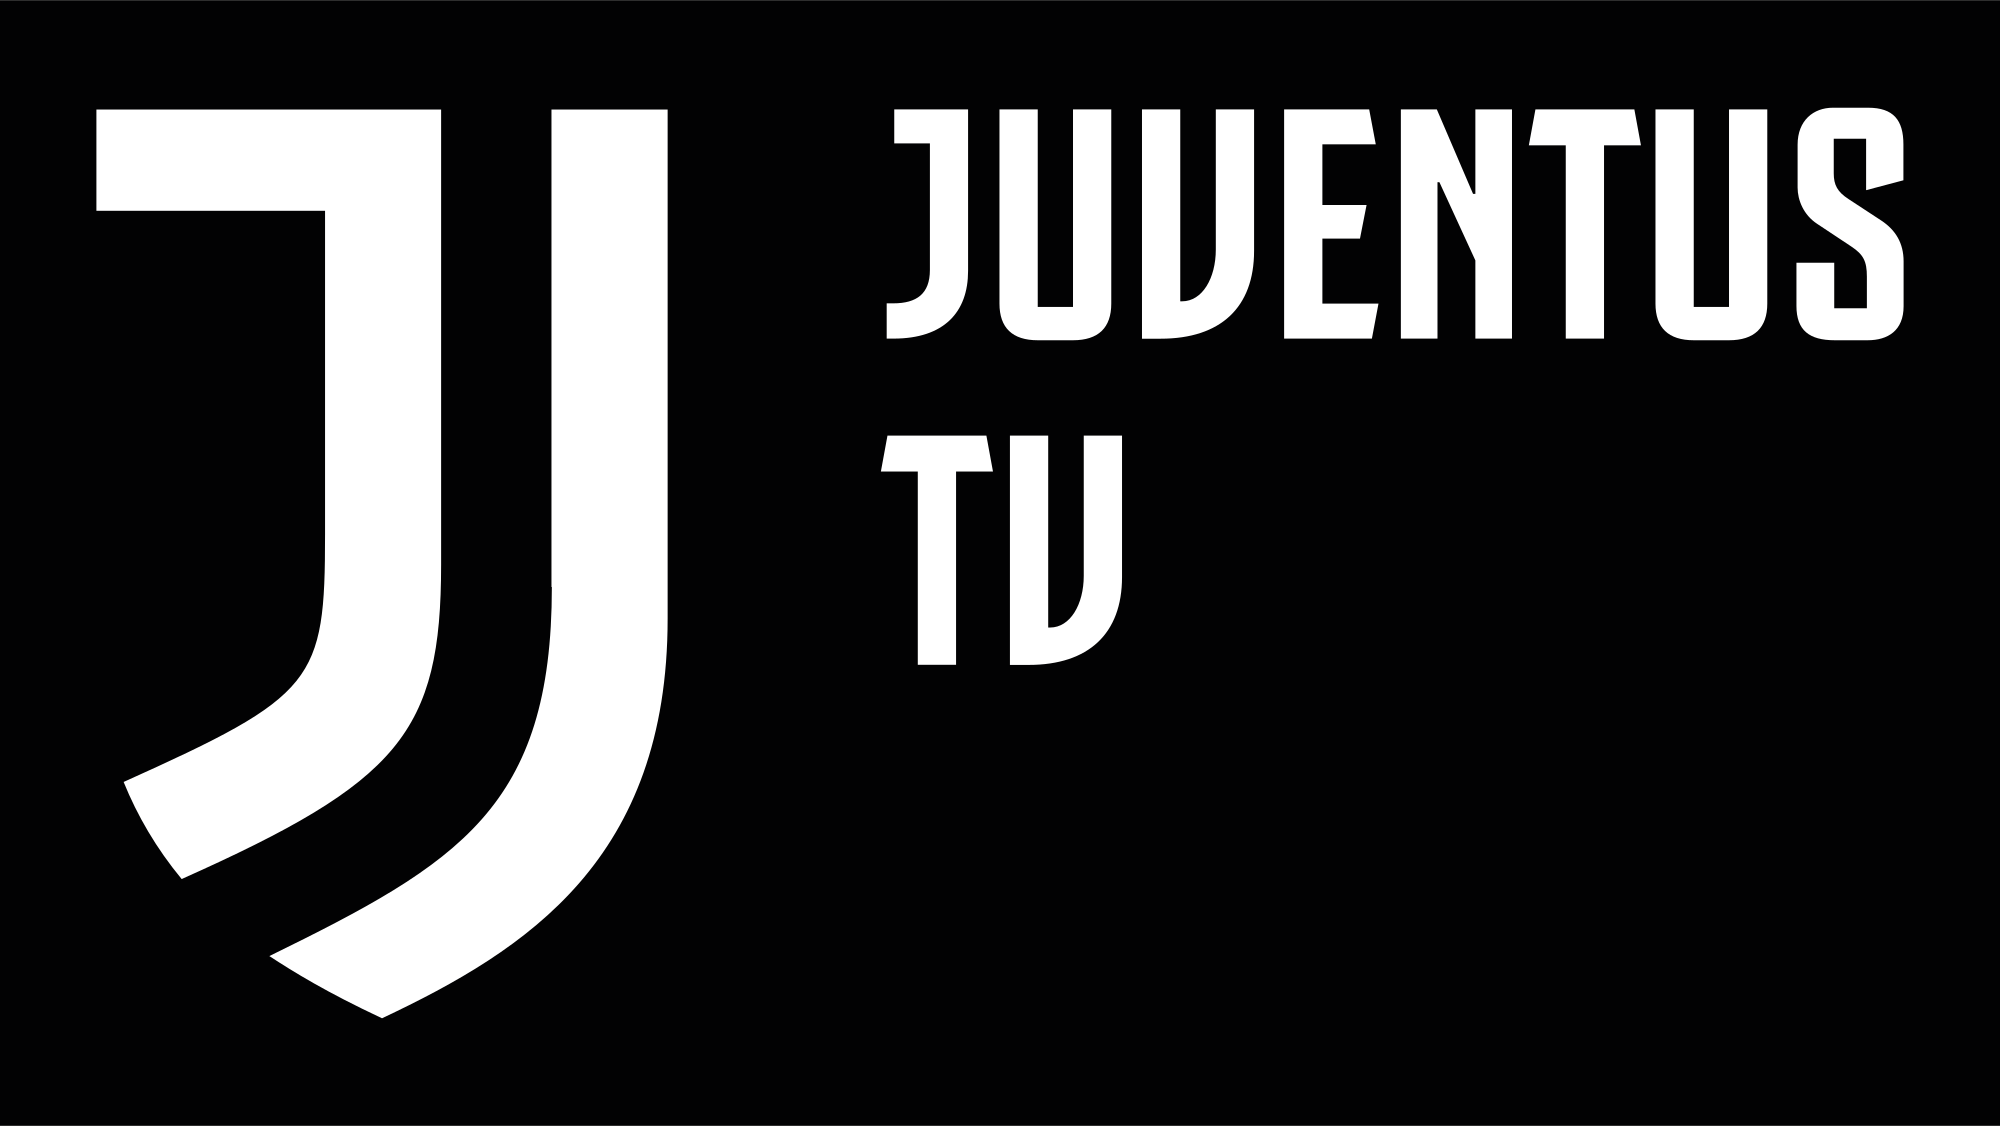 Juventus' Allegri to leave after season's completion